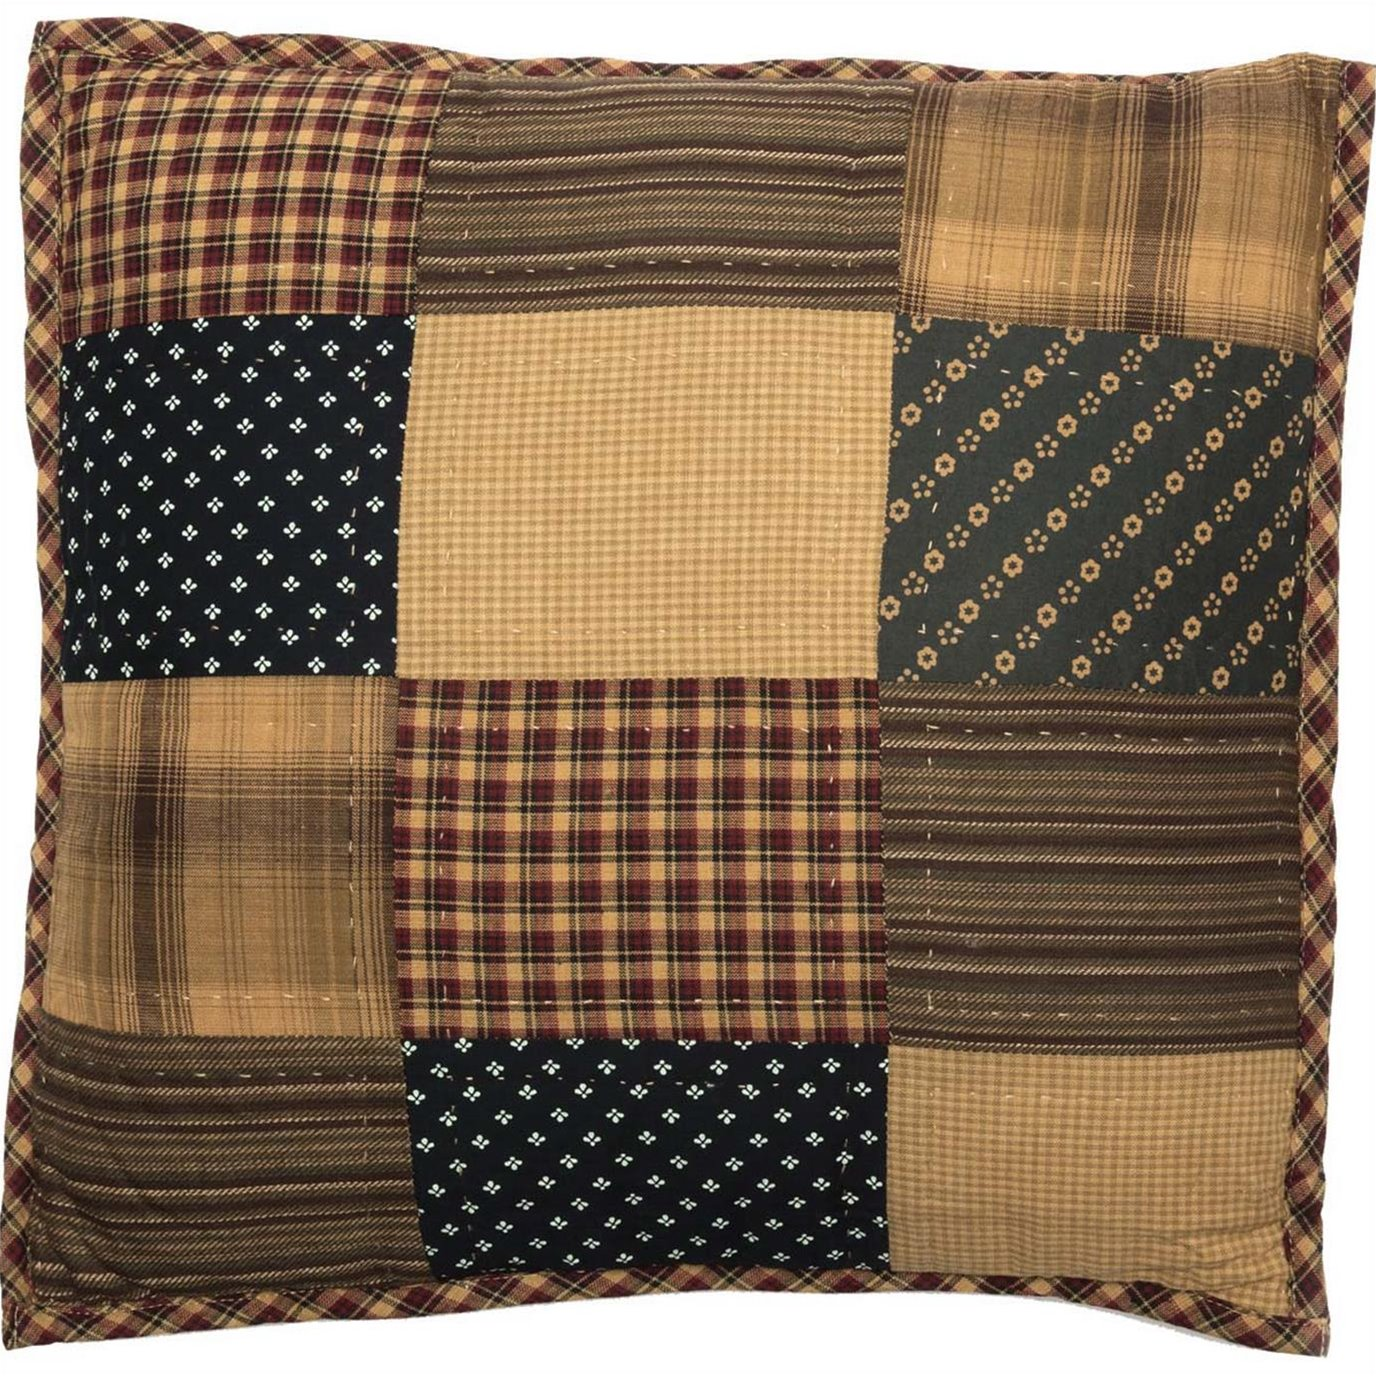 Patriotic Patch Quilted Pillow 16x16